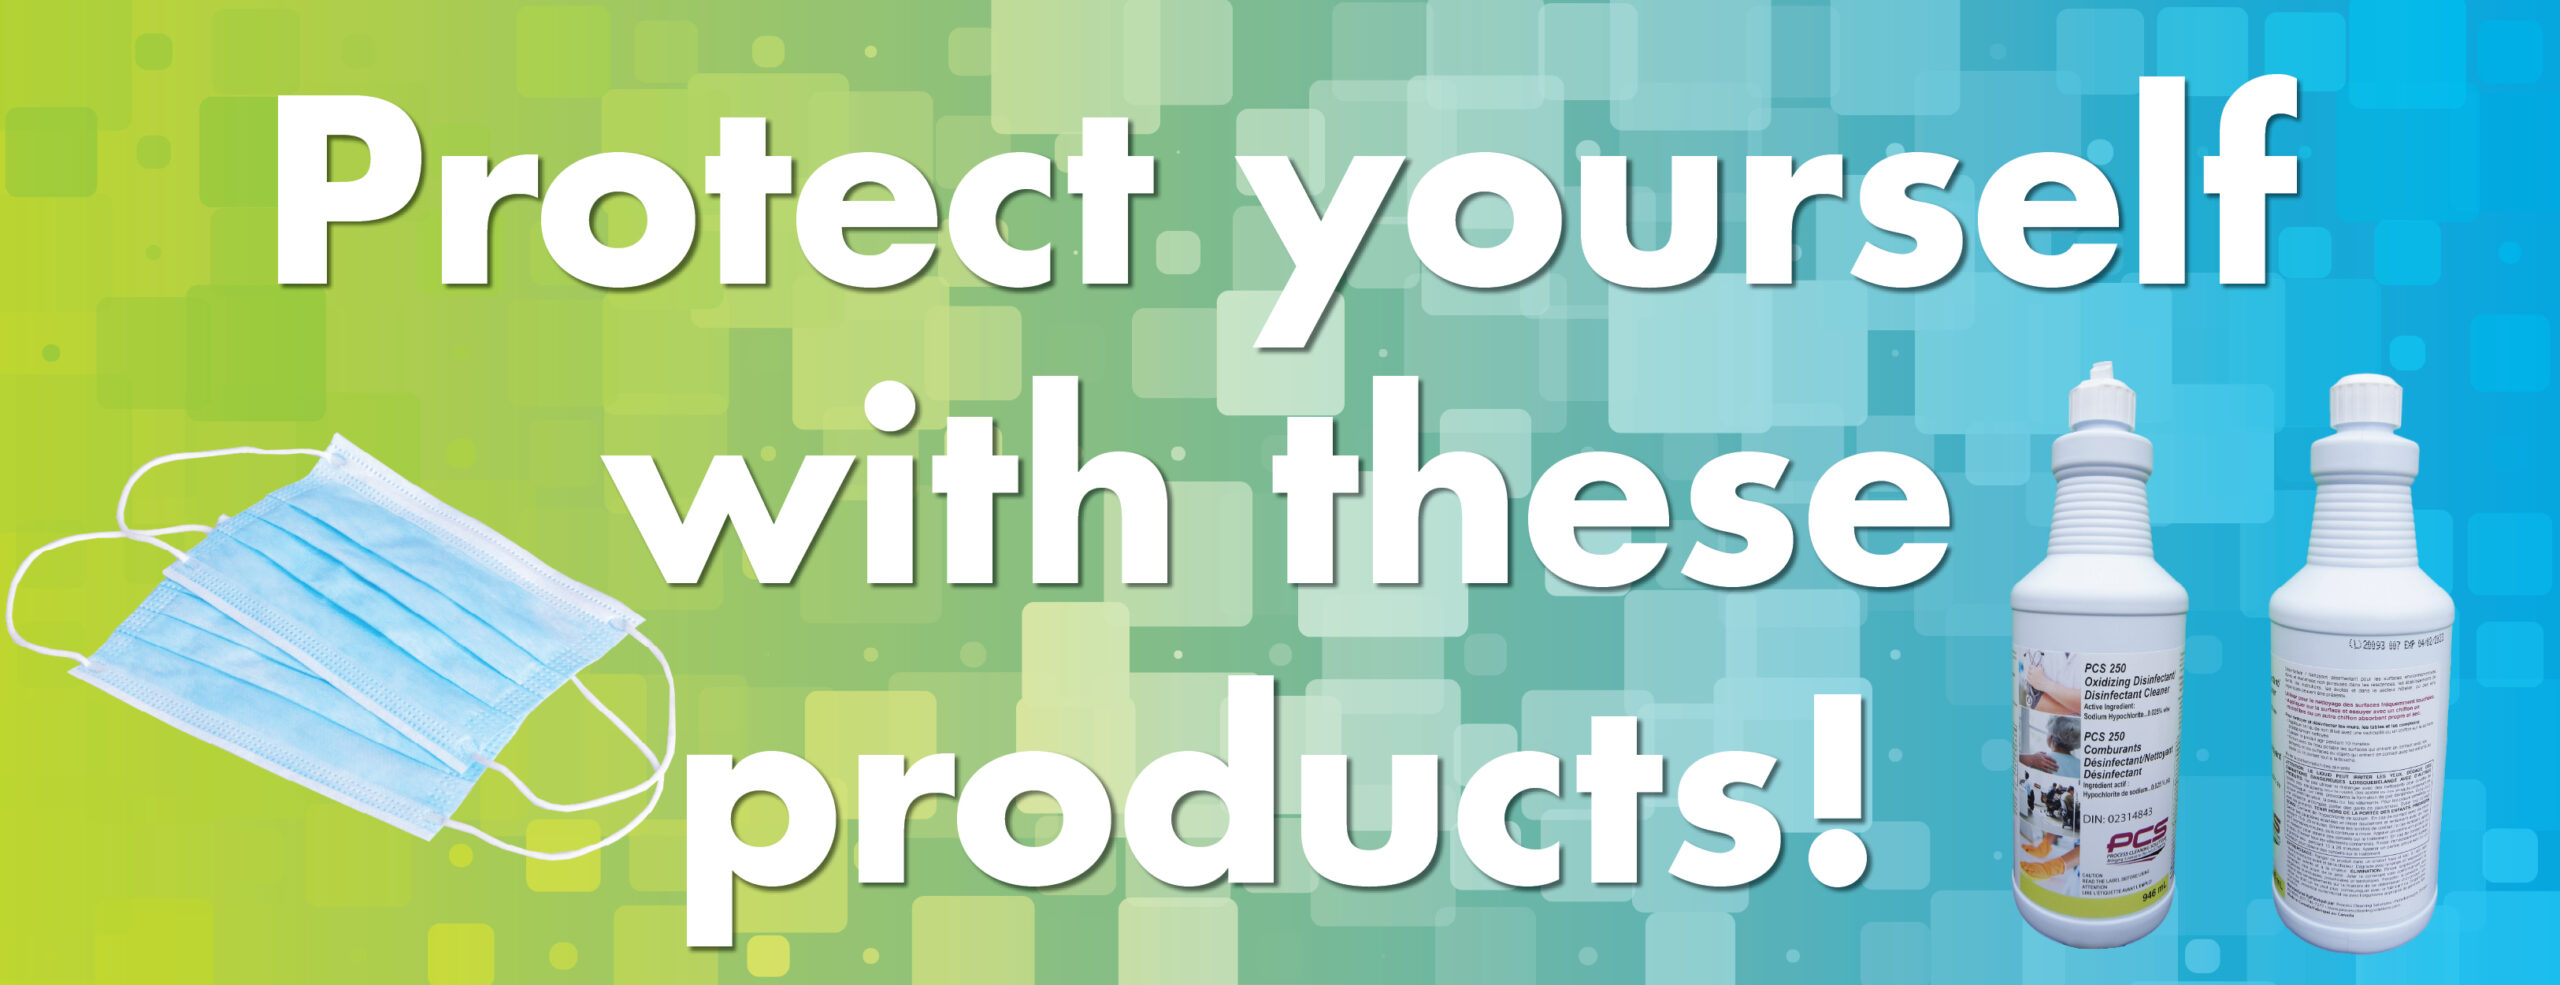 Protect yourself with these products